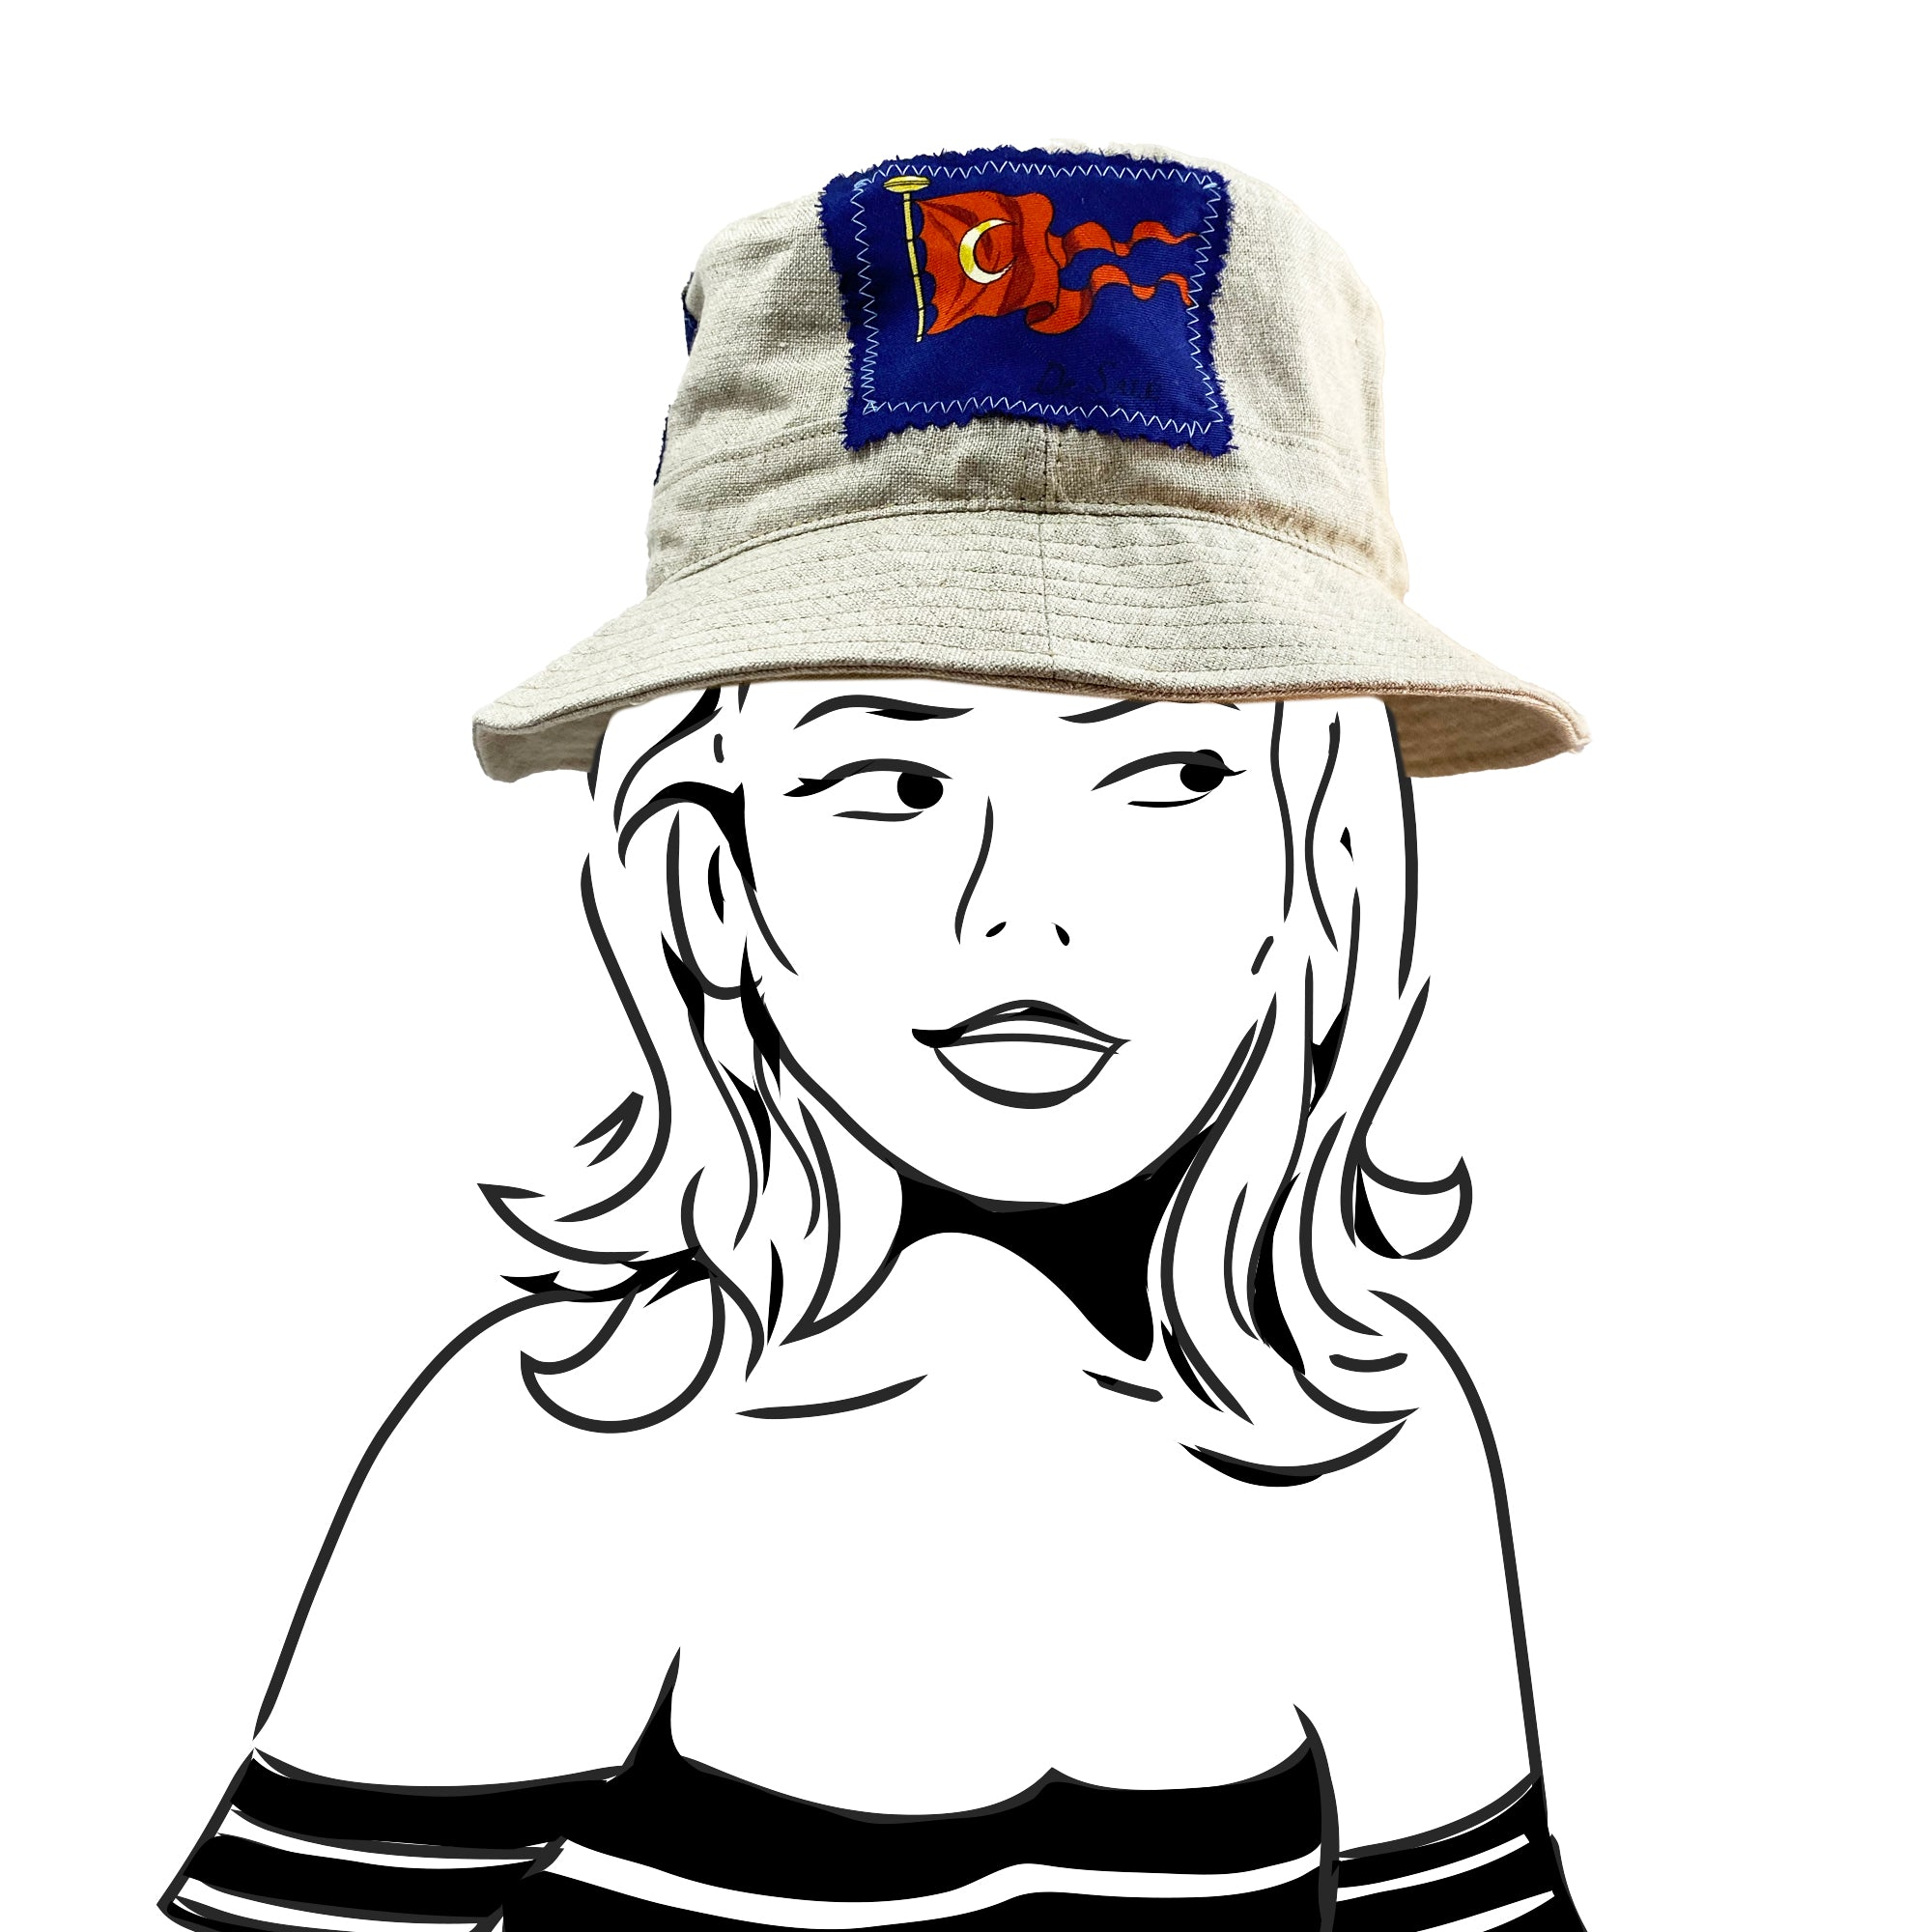 Bucket Hat - Natural Linen with Hermes Silk - XS/S